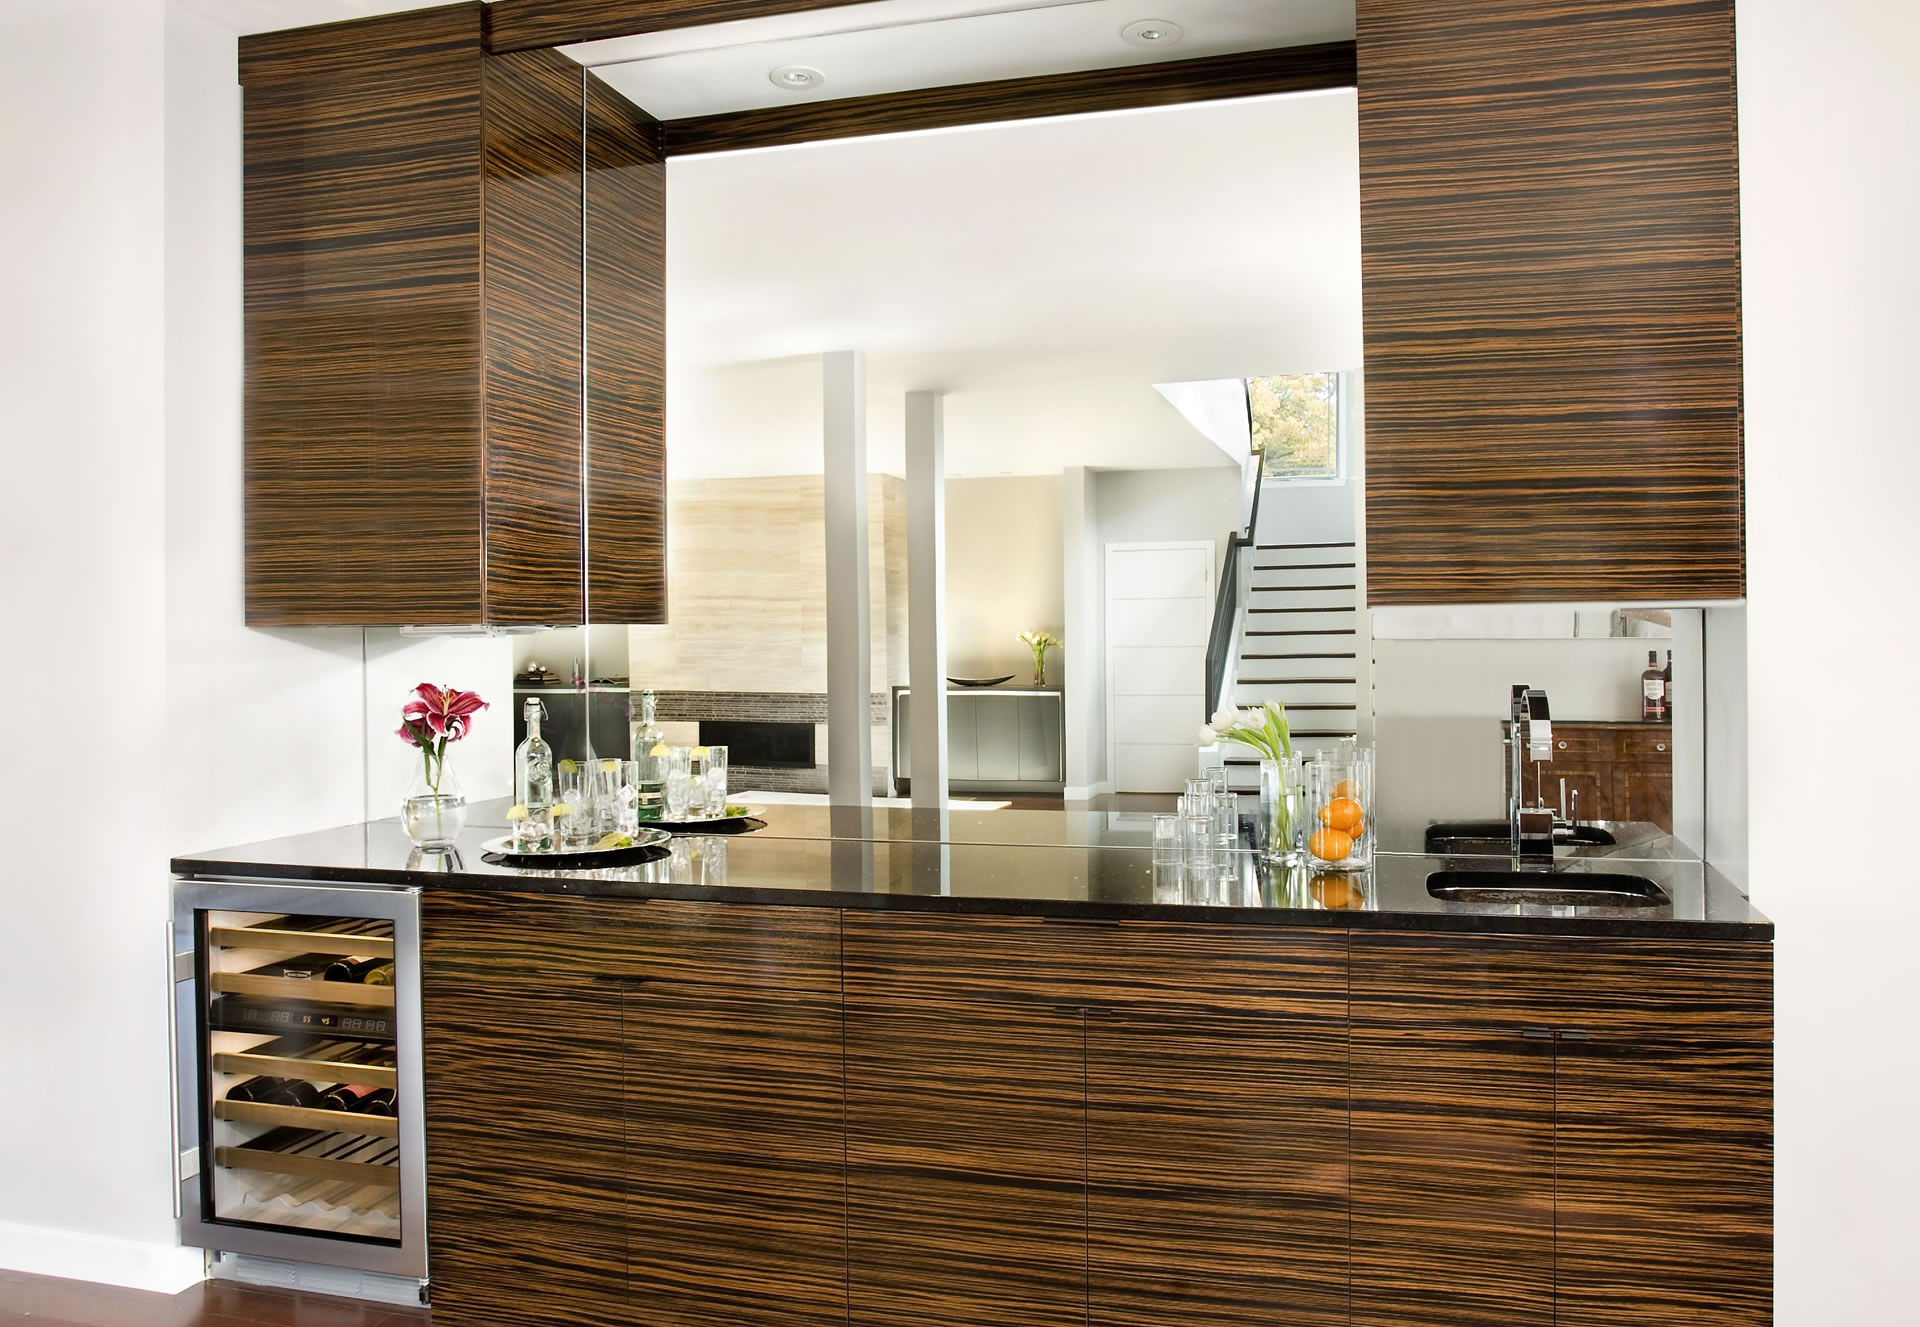 Newton Kitchens & Design - Cabinetry